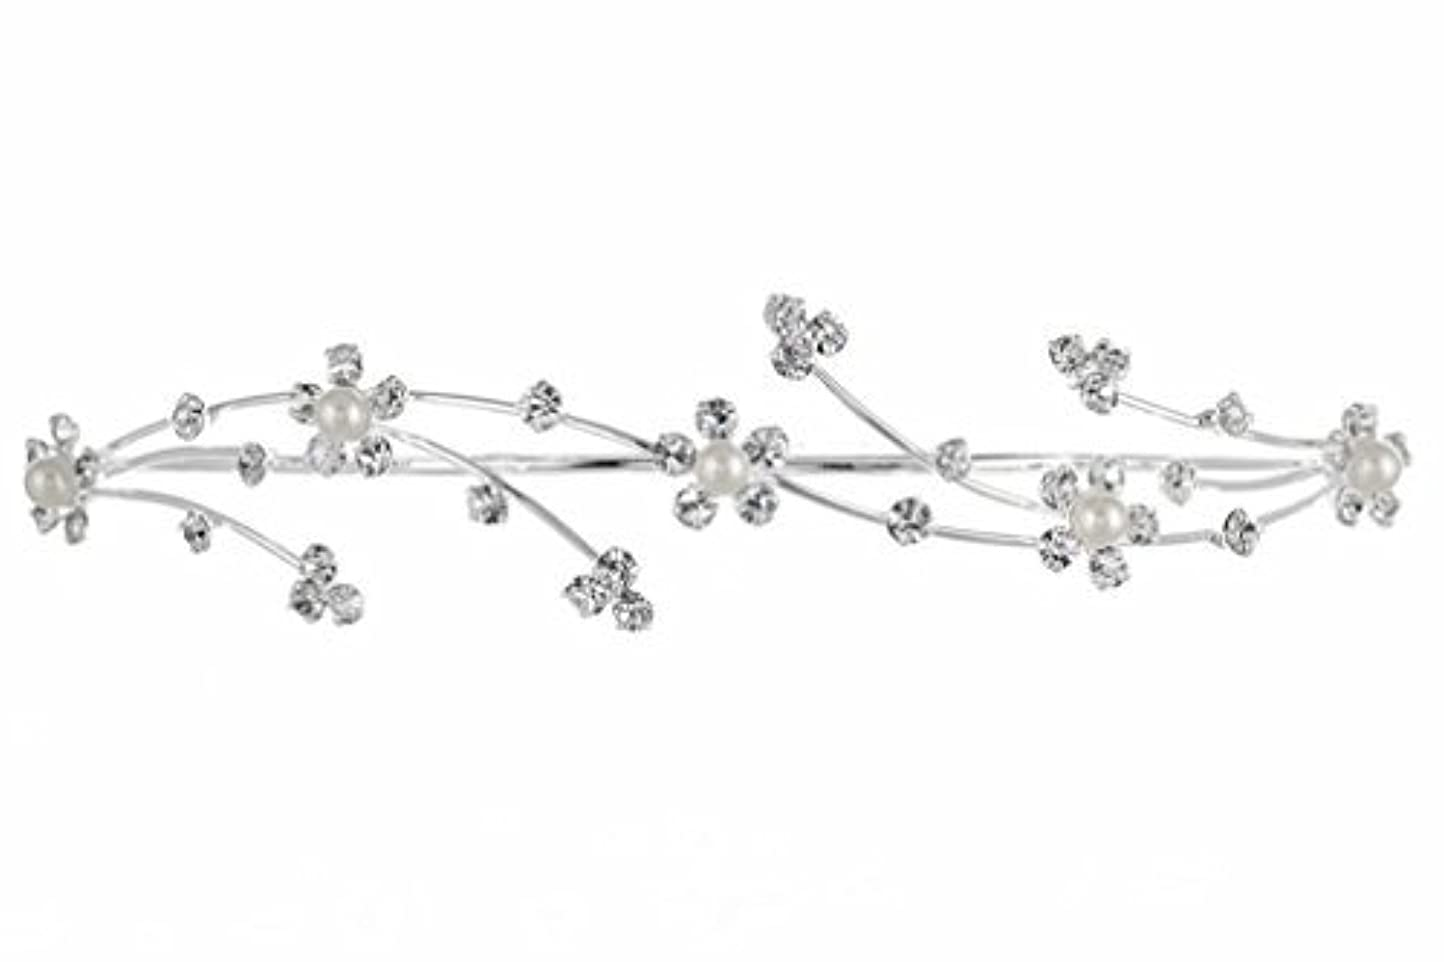 Elegant Flower Girl Bridesmaid Tiara Hair Comb - Silver Plated Faux Pearls T160 [並行輸入品]